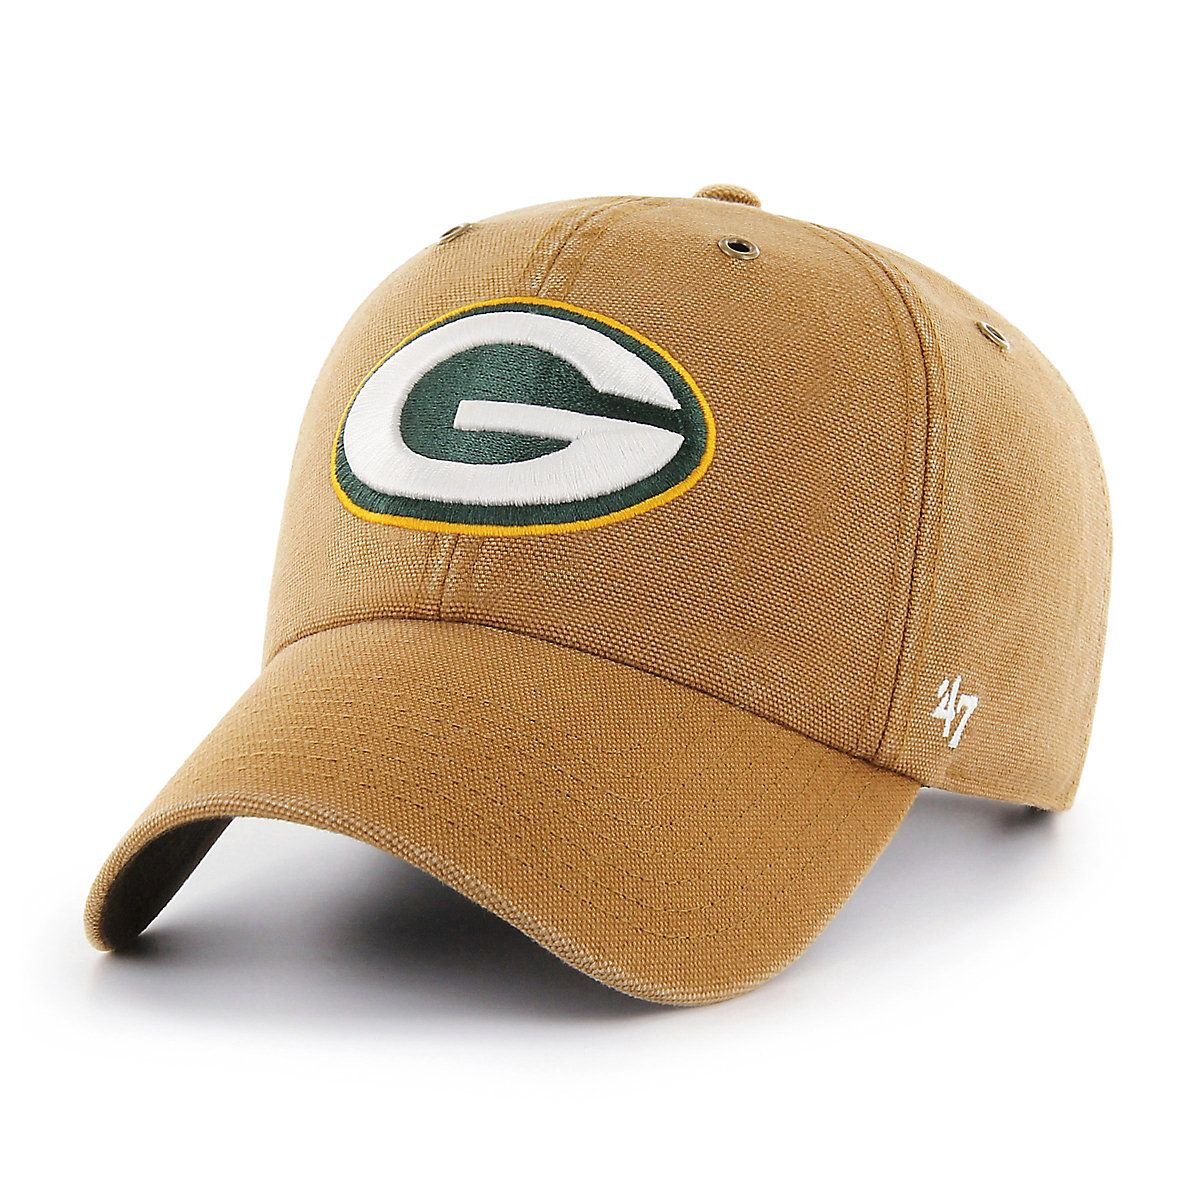 de7733256c0a2 Shop the GreenBay Packers Carhartt X  47 Clean Up for Men s at Carhartt.com  for Men s Hats that works as hard as you do.